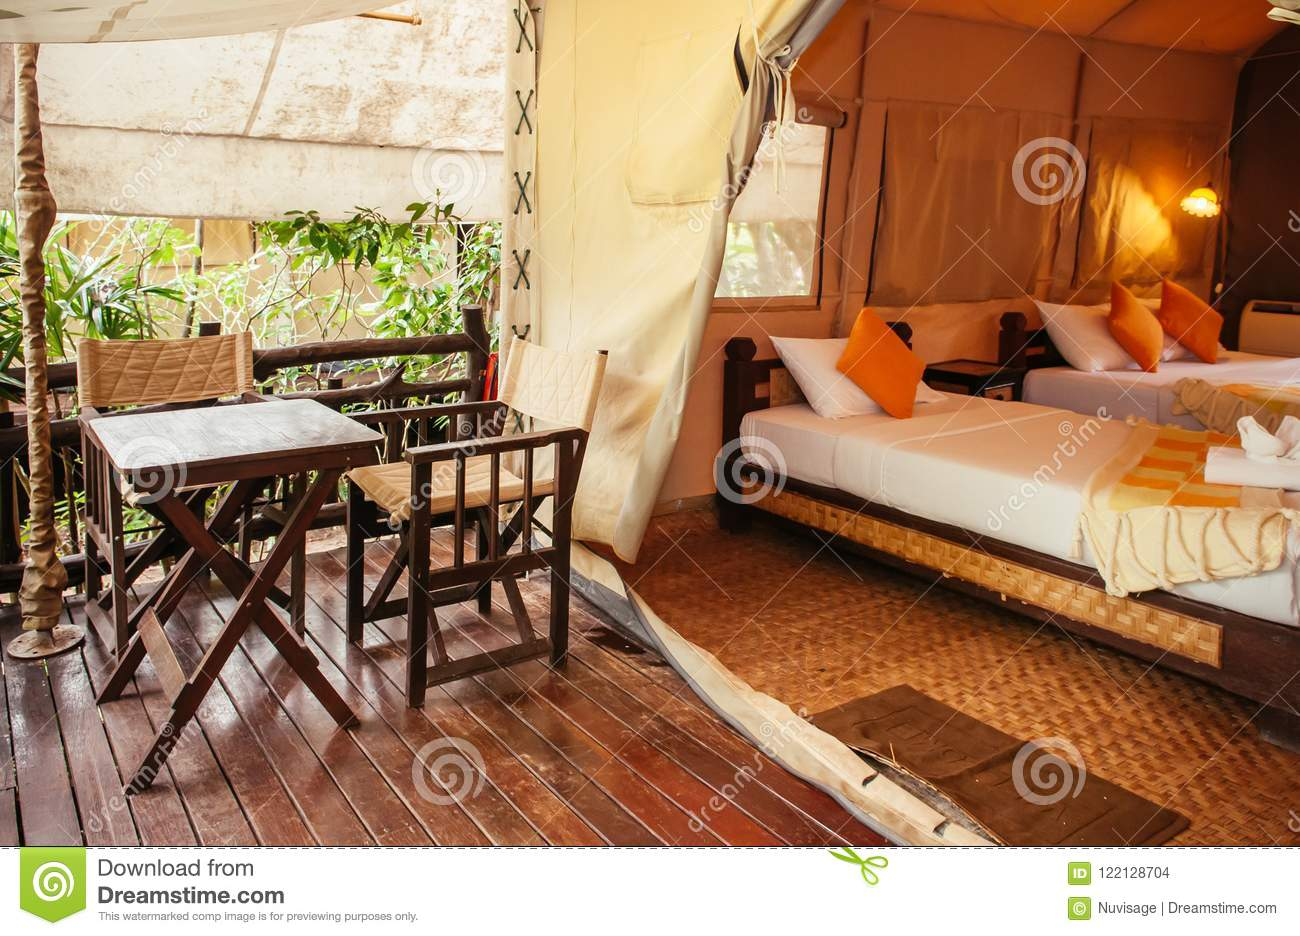 Interior of luxurious camping resort in nature forest, glamping